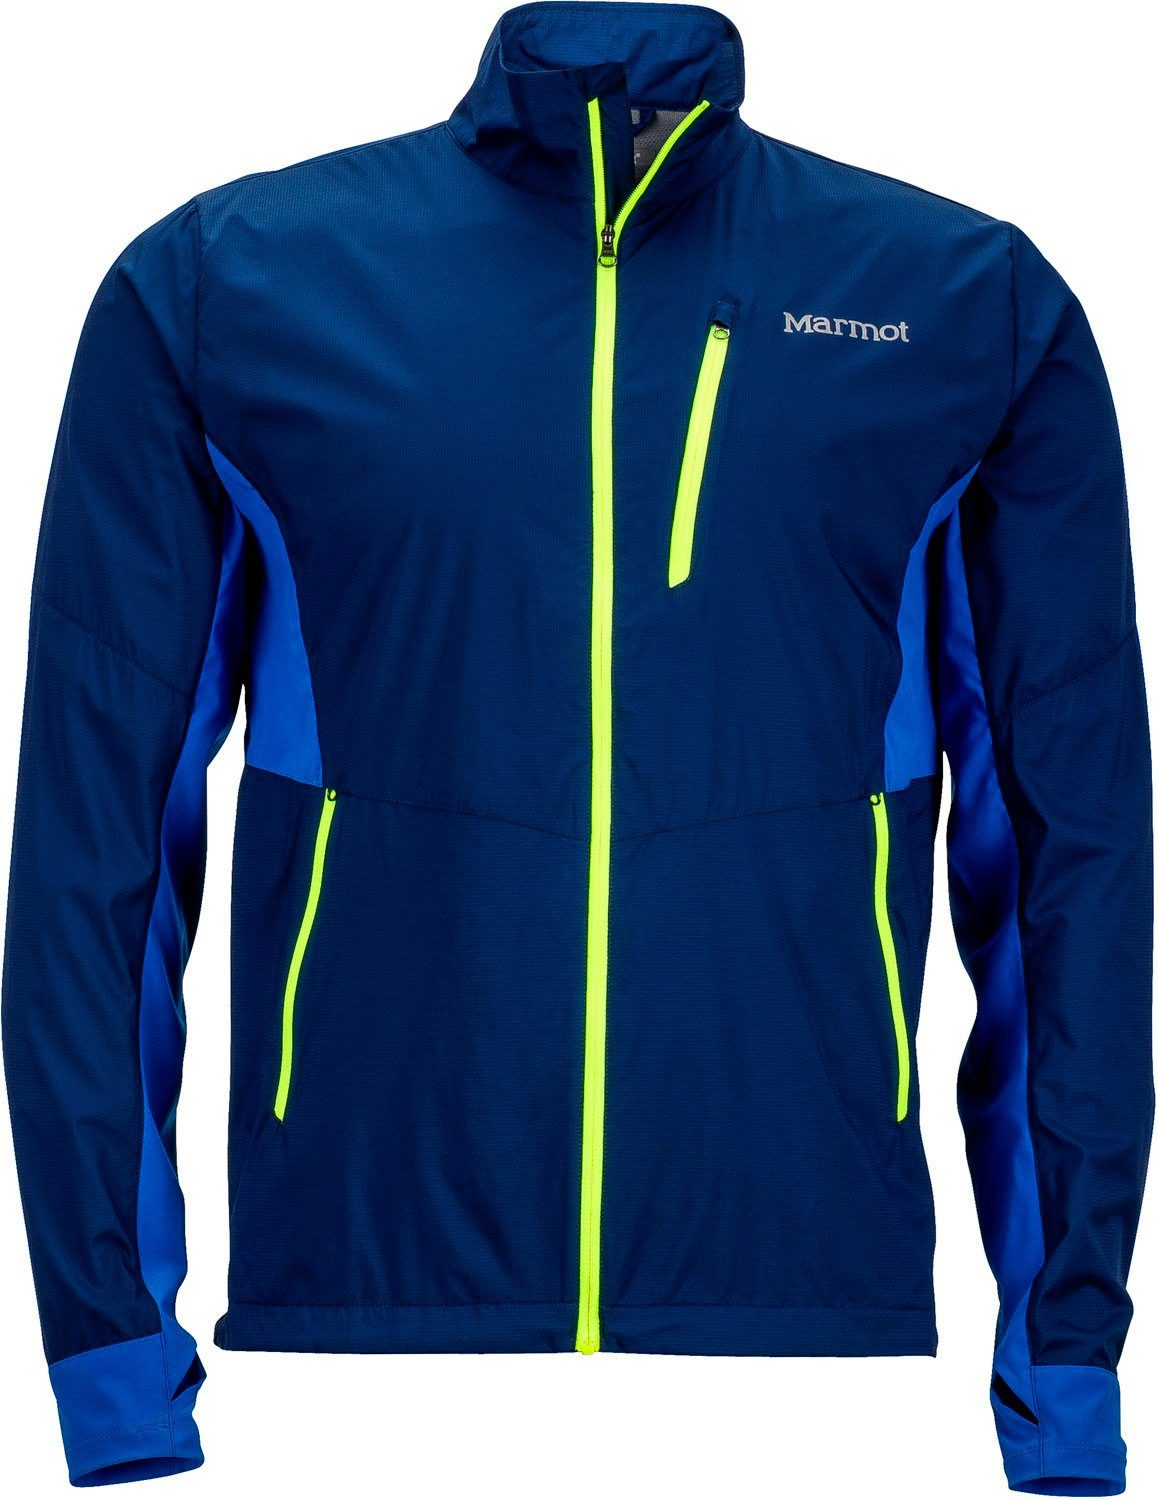 Marmot Outdoorjacke »Hyperdash Jacket Men«